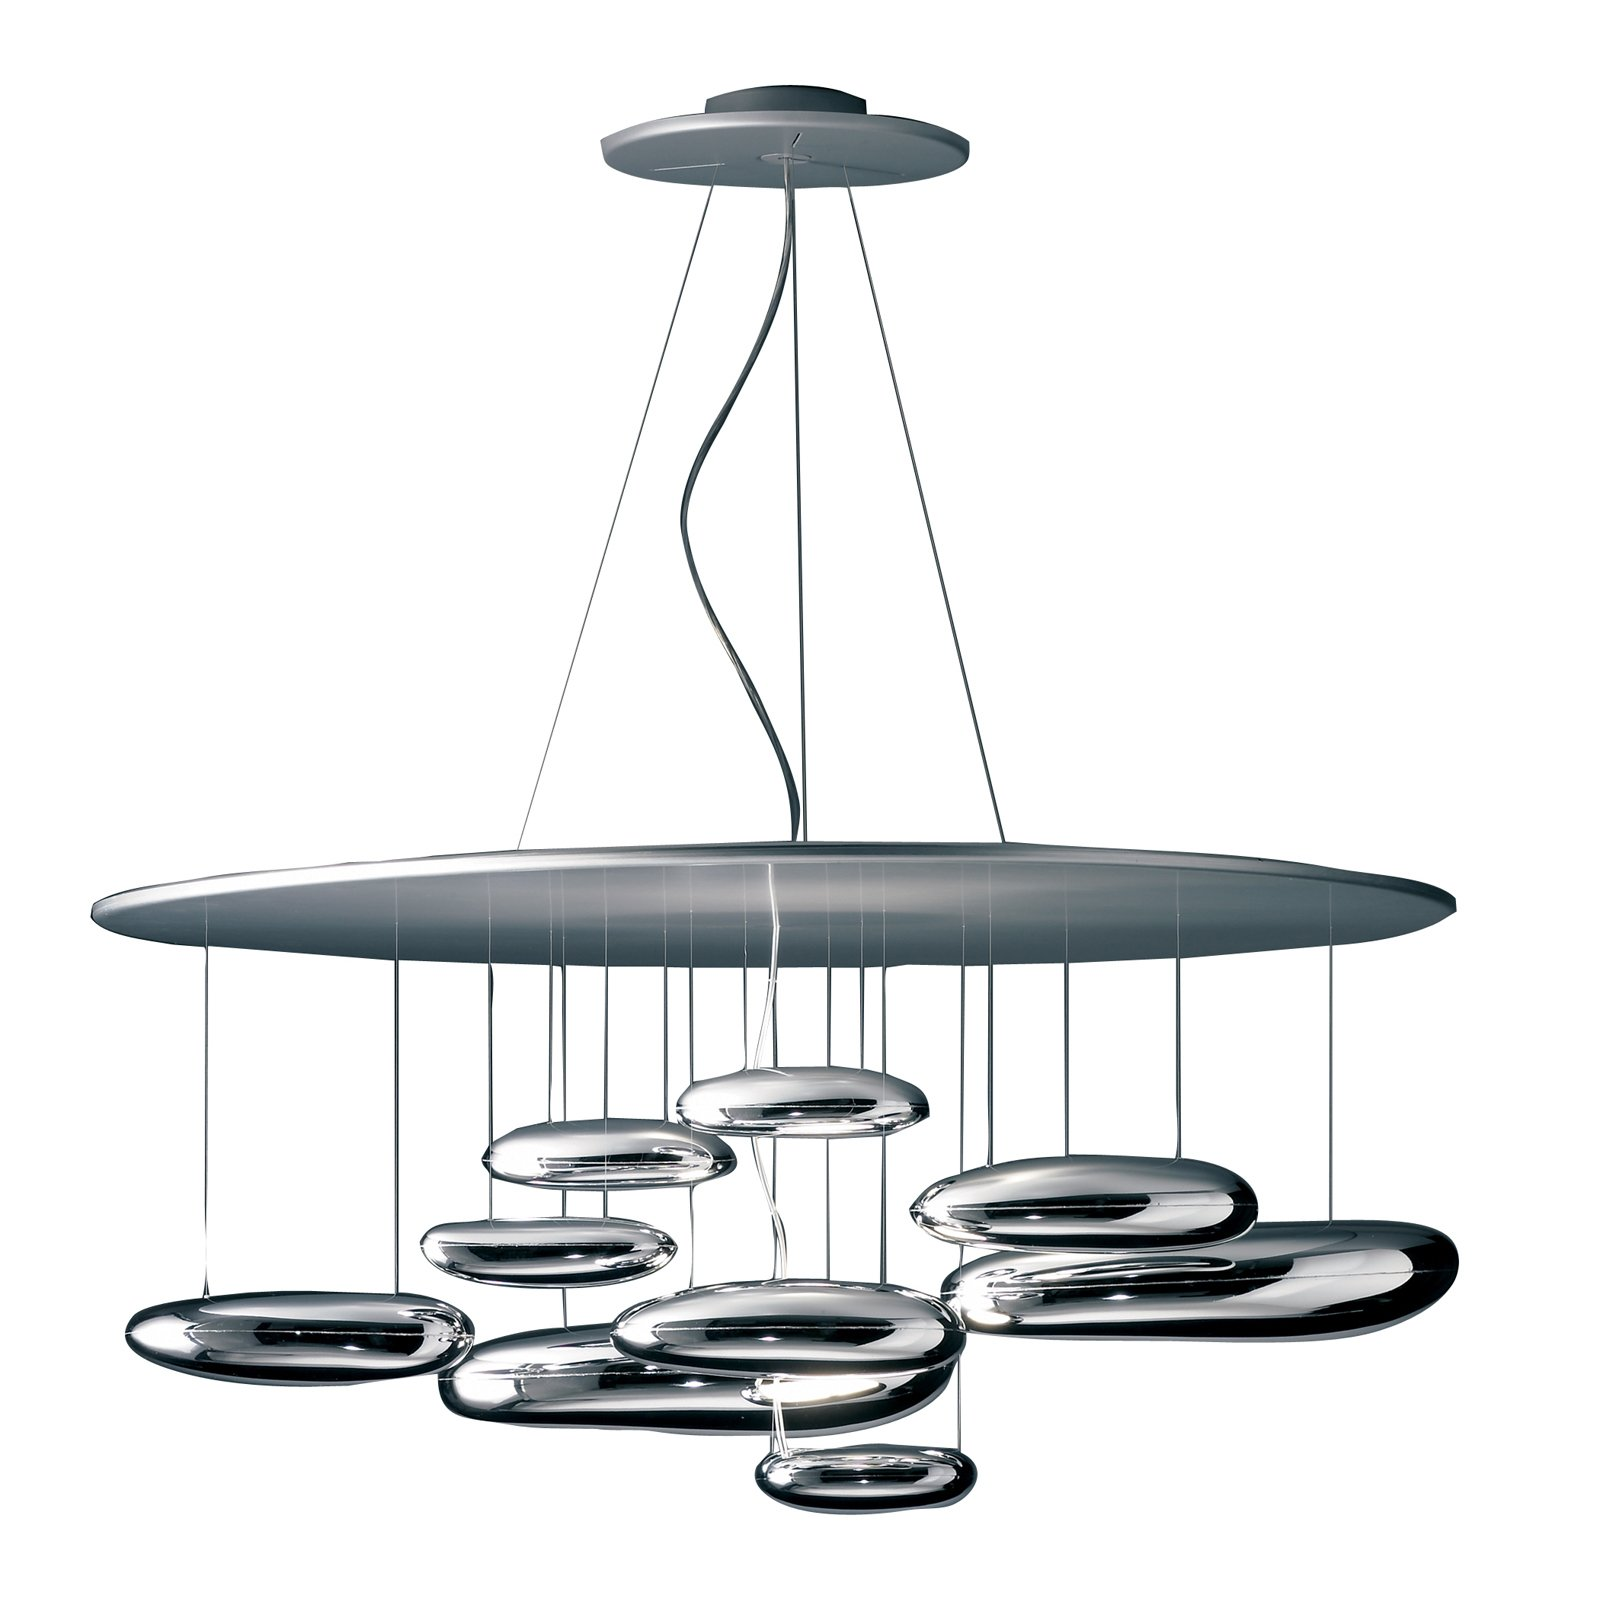 The Mercury Suspension Lamp by Ross Lovegrove for Artemide  Furniture Finds at ICFF by Dwell